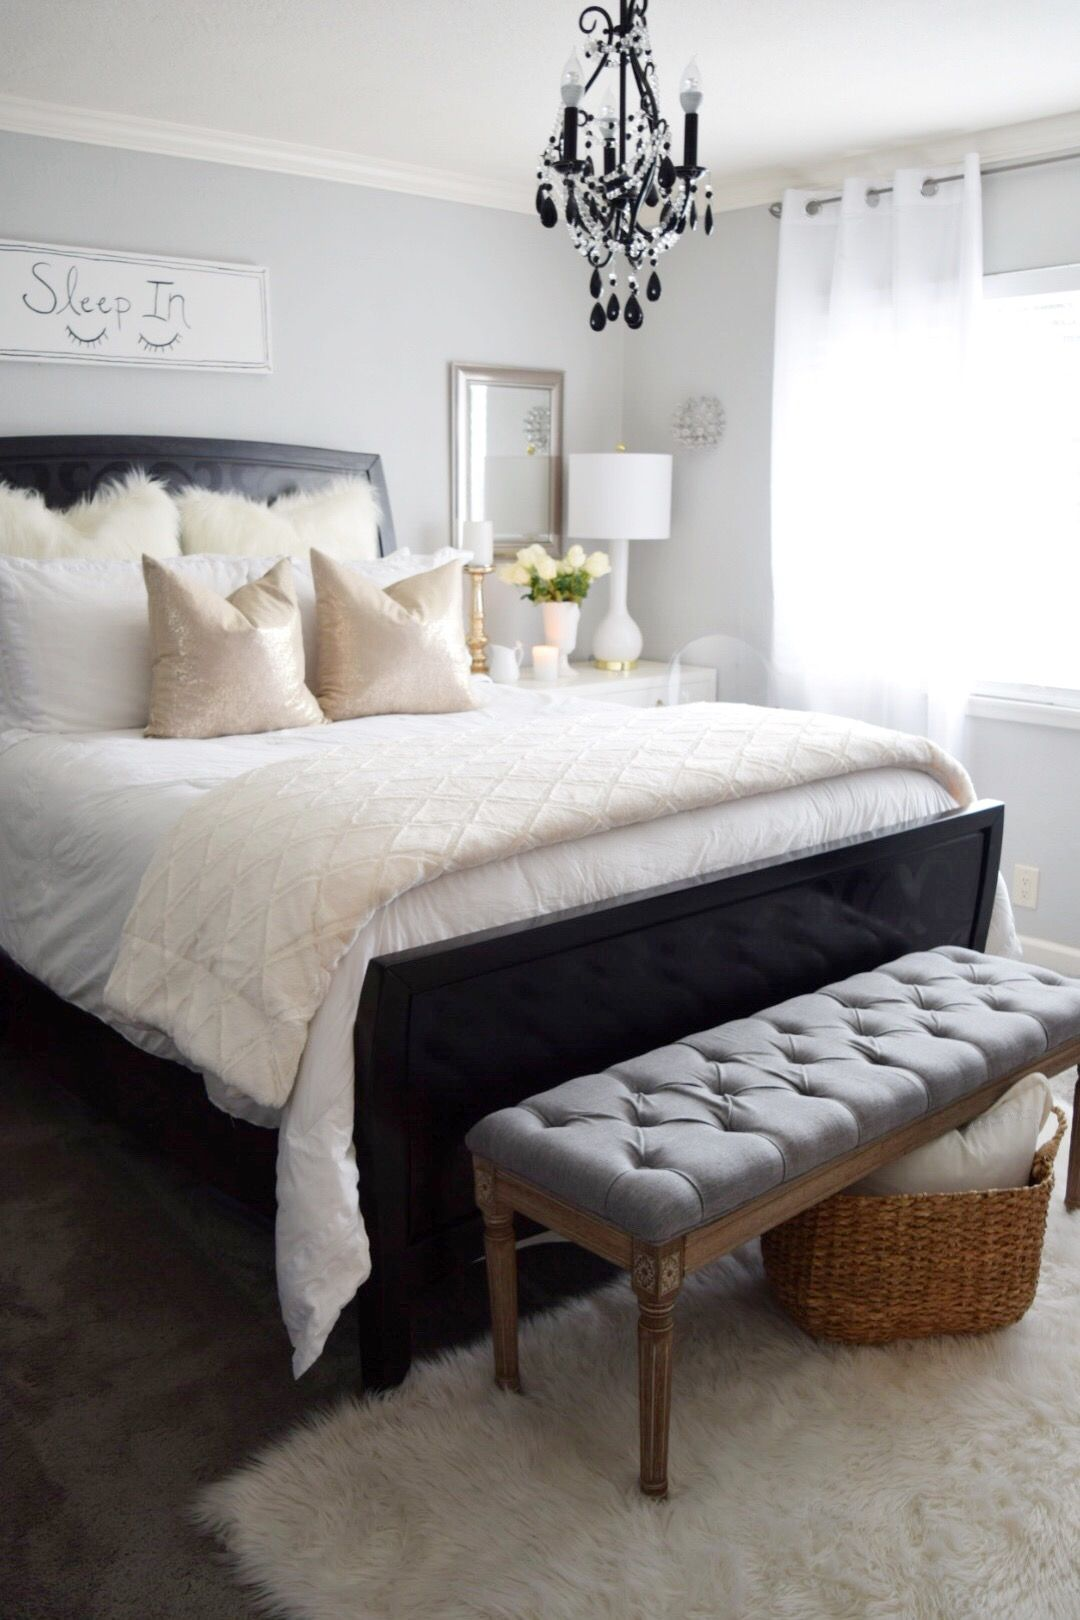 Turn Back the Clocks in Your Own Slumber Sanctuary | a room to the ...